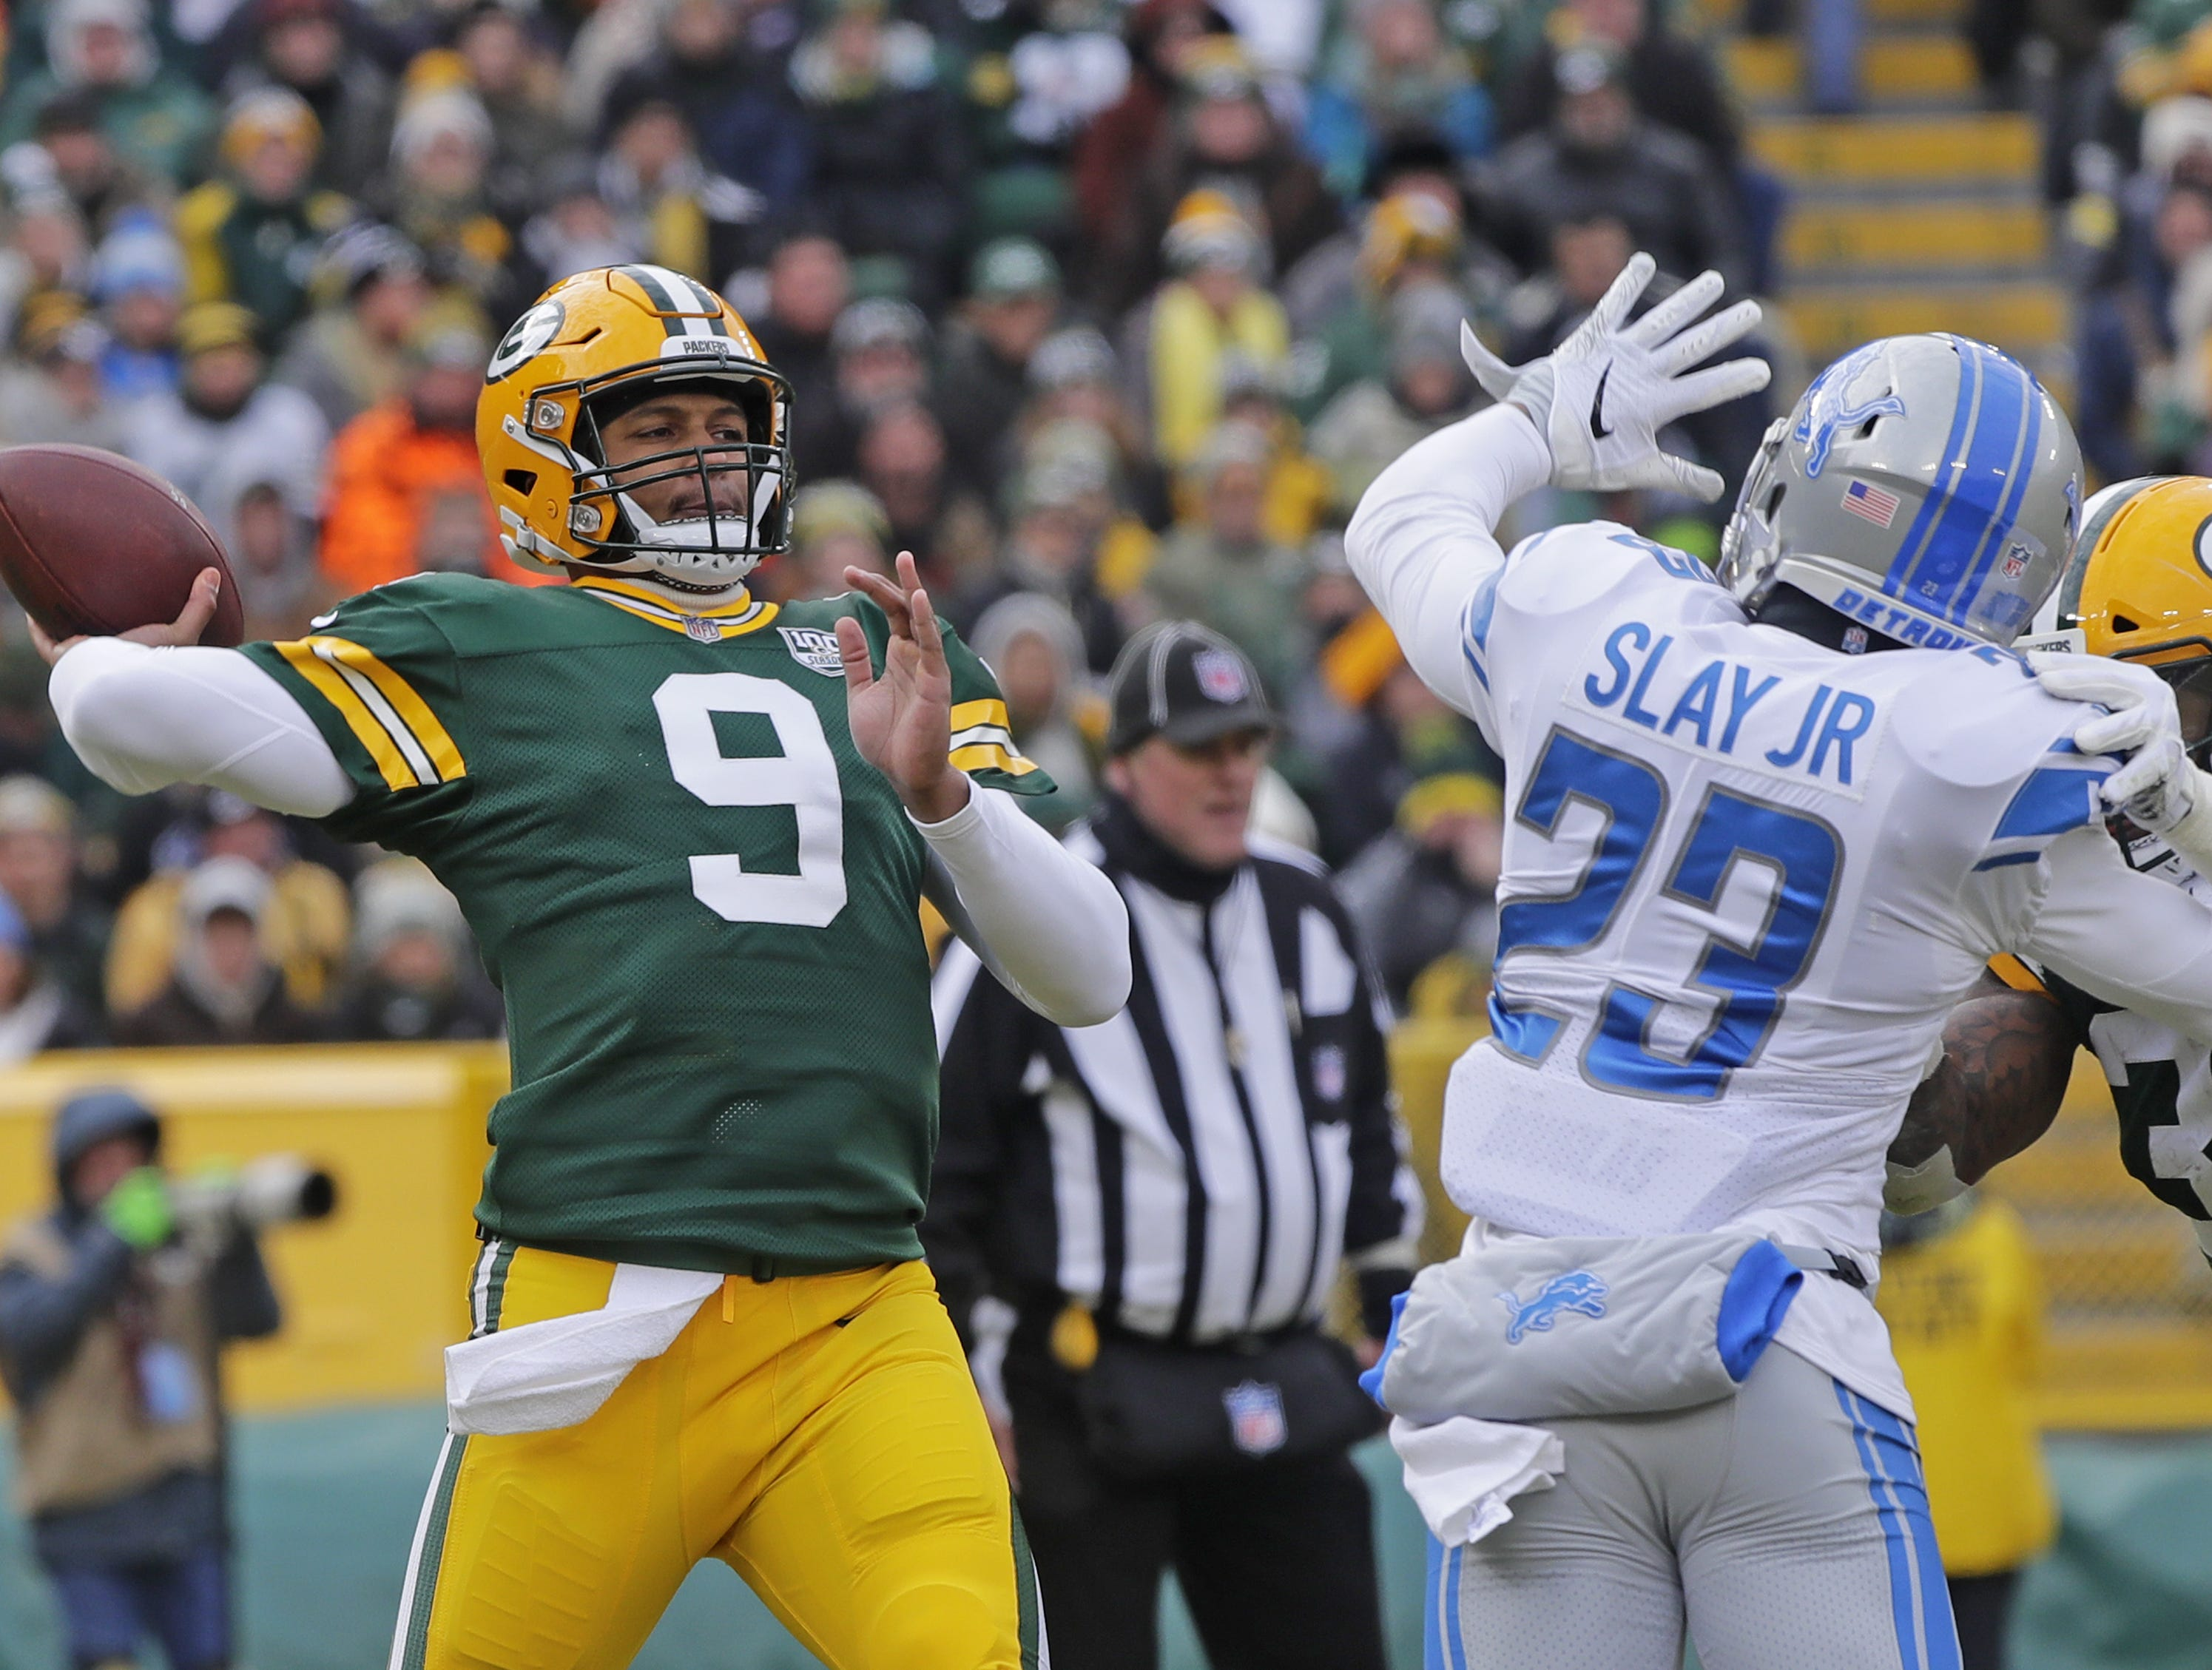 Green Bay Packers quarterback DeShone Kizer (9) throws in the third quarter against the Detroit Lions at Lambeau Field on Sunday, December 30, 2018 in Green Bay, Wis. Adam Wesley/USA TODAY NETWORK-Wis